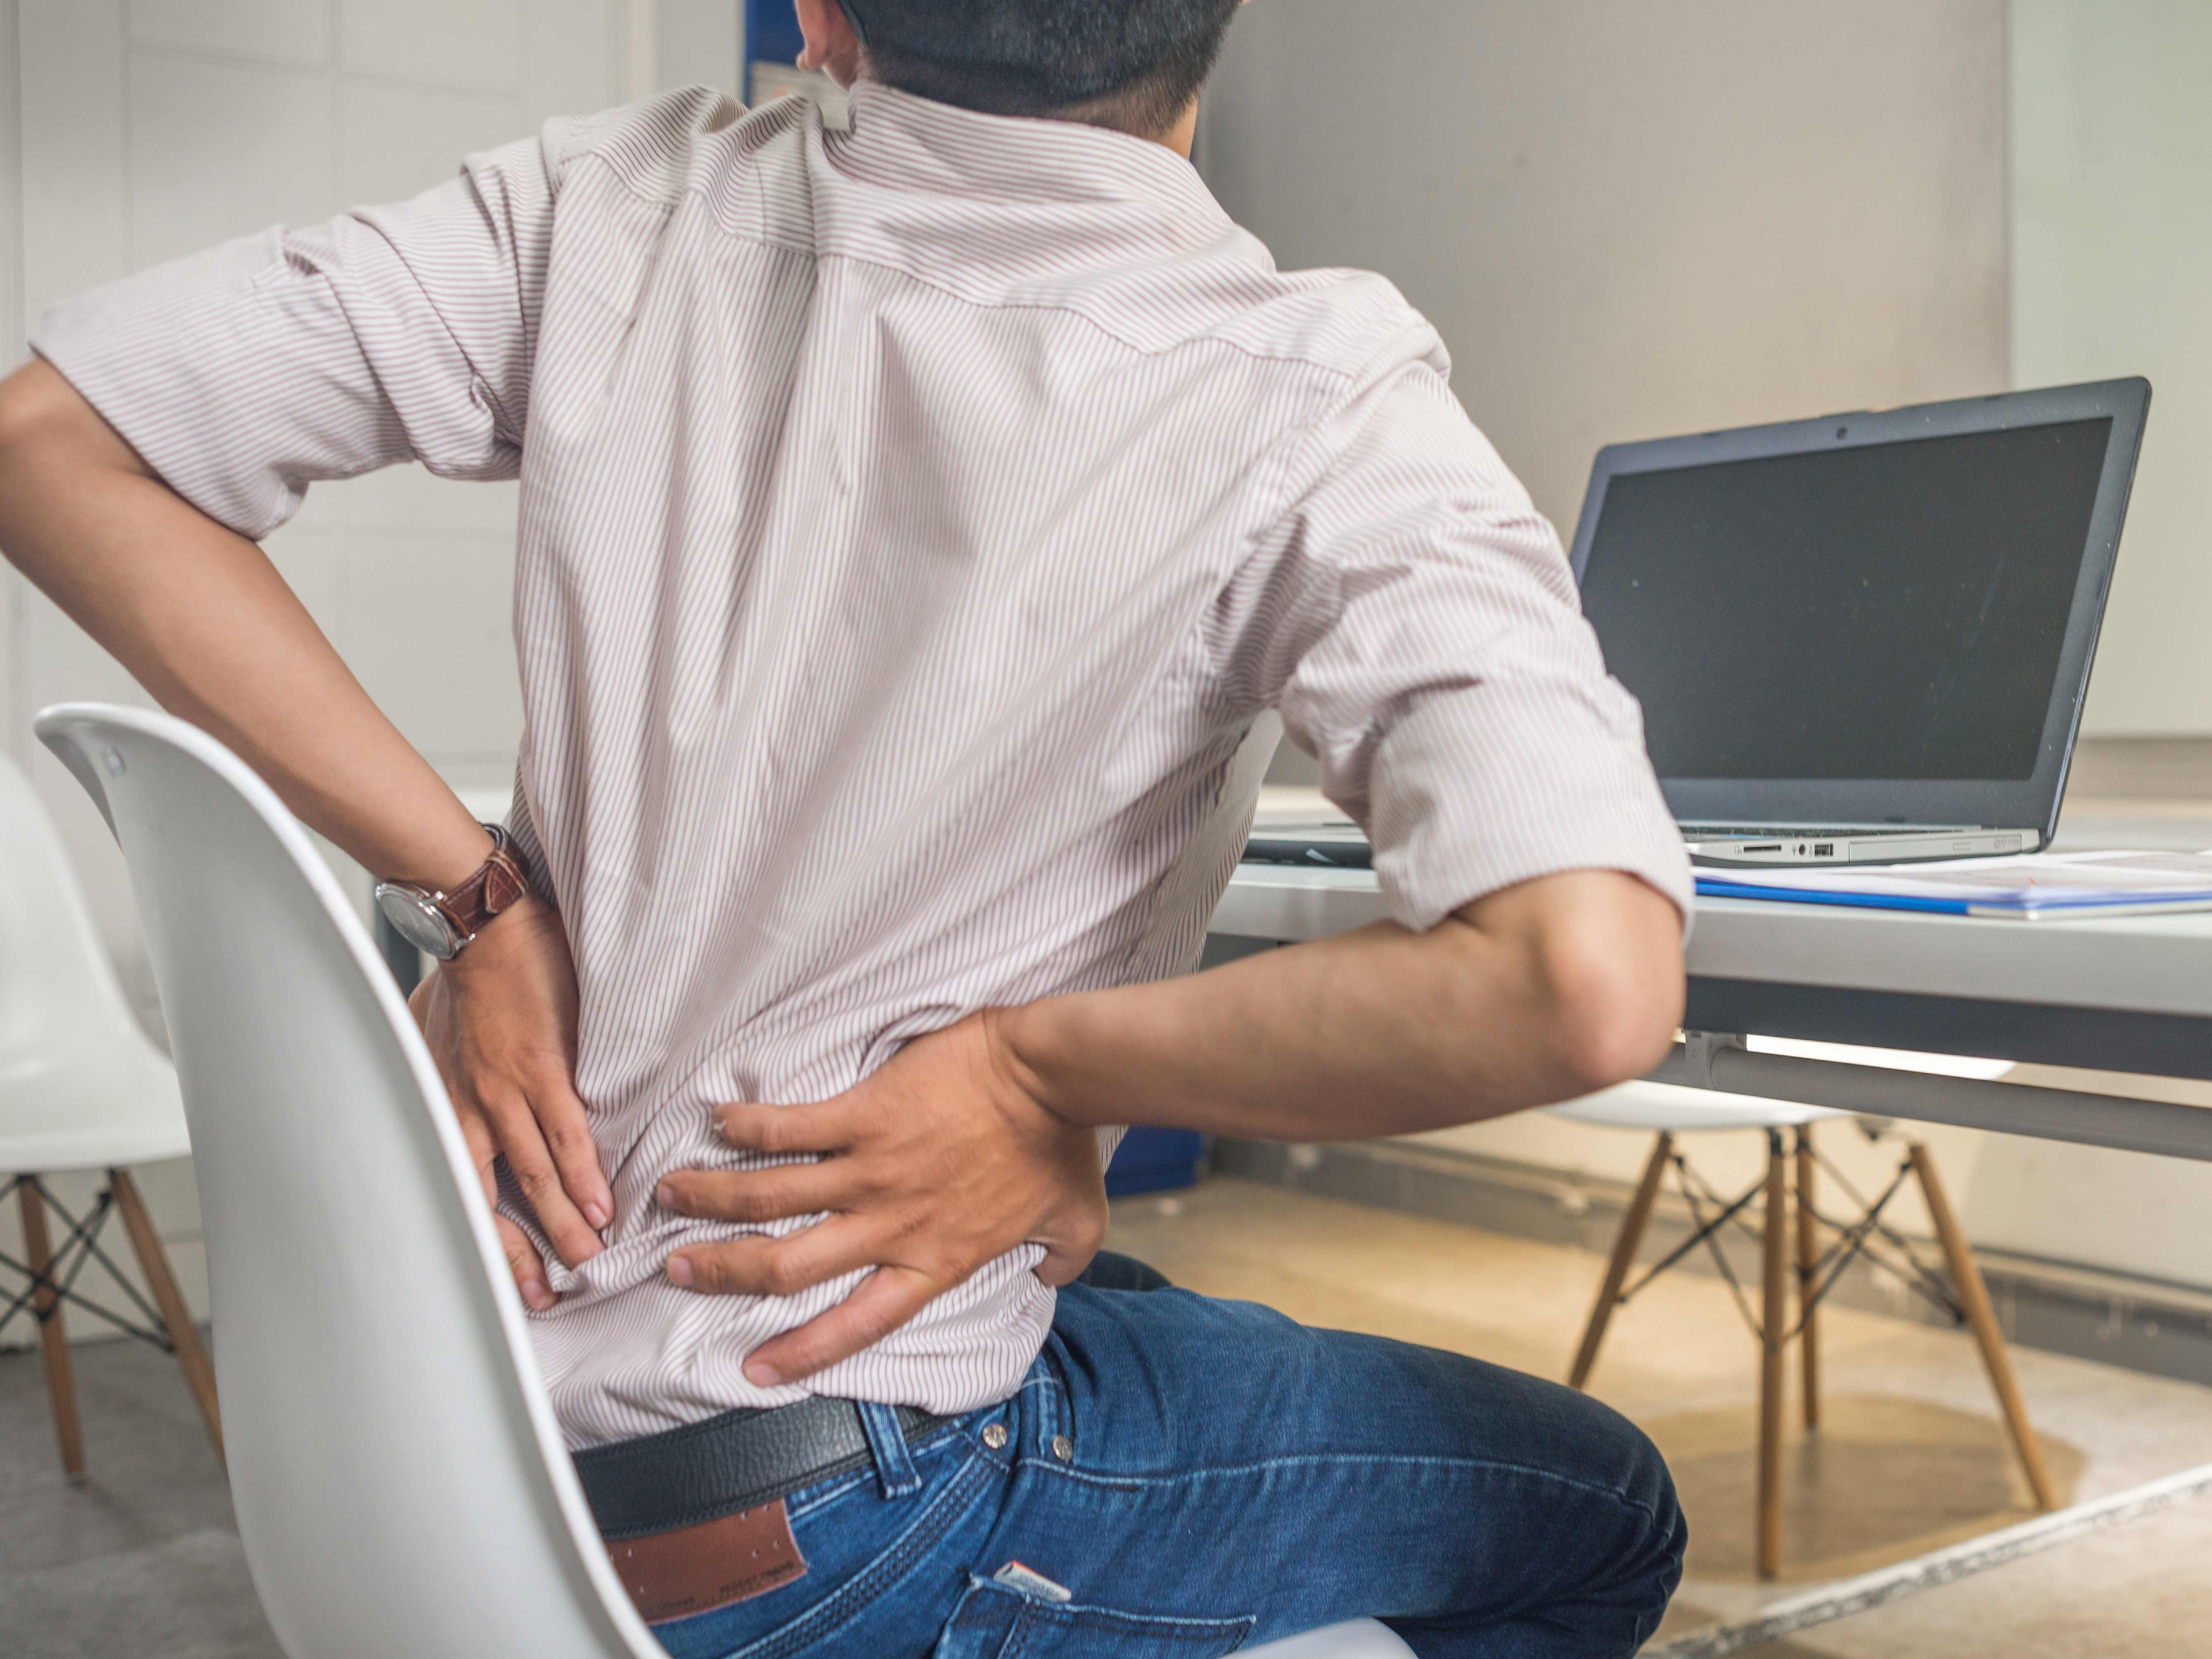 Doctor's 3-step plan for sustained pain relief